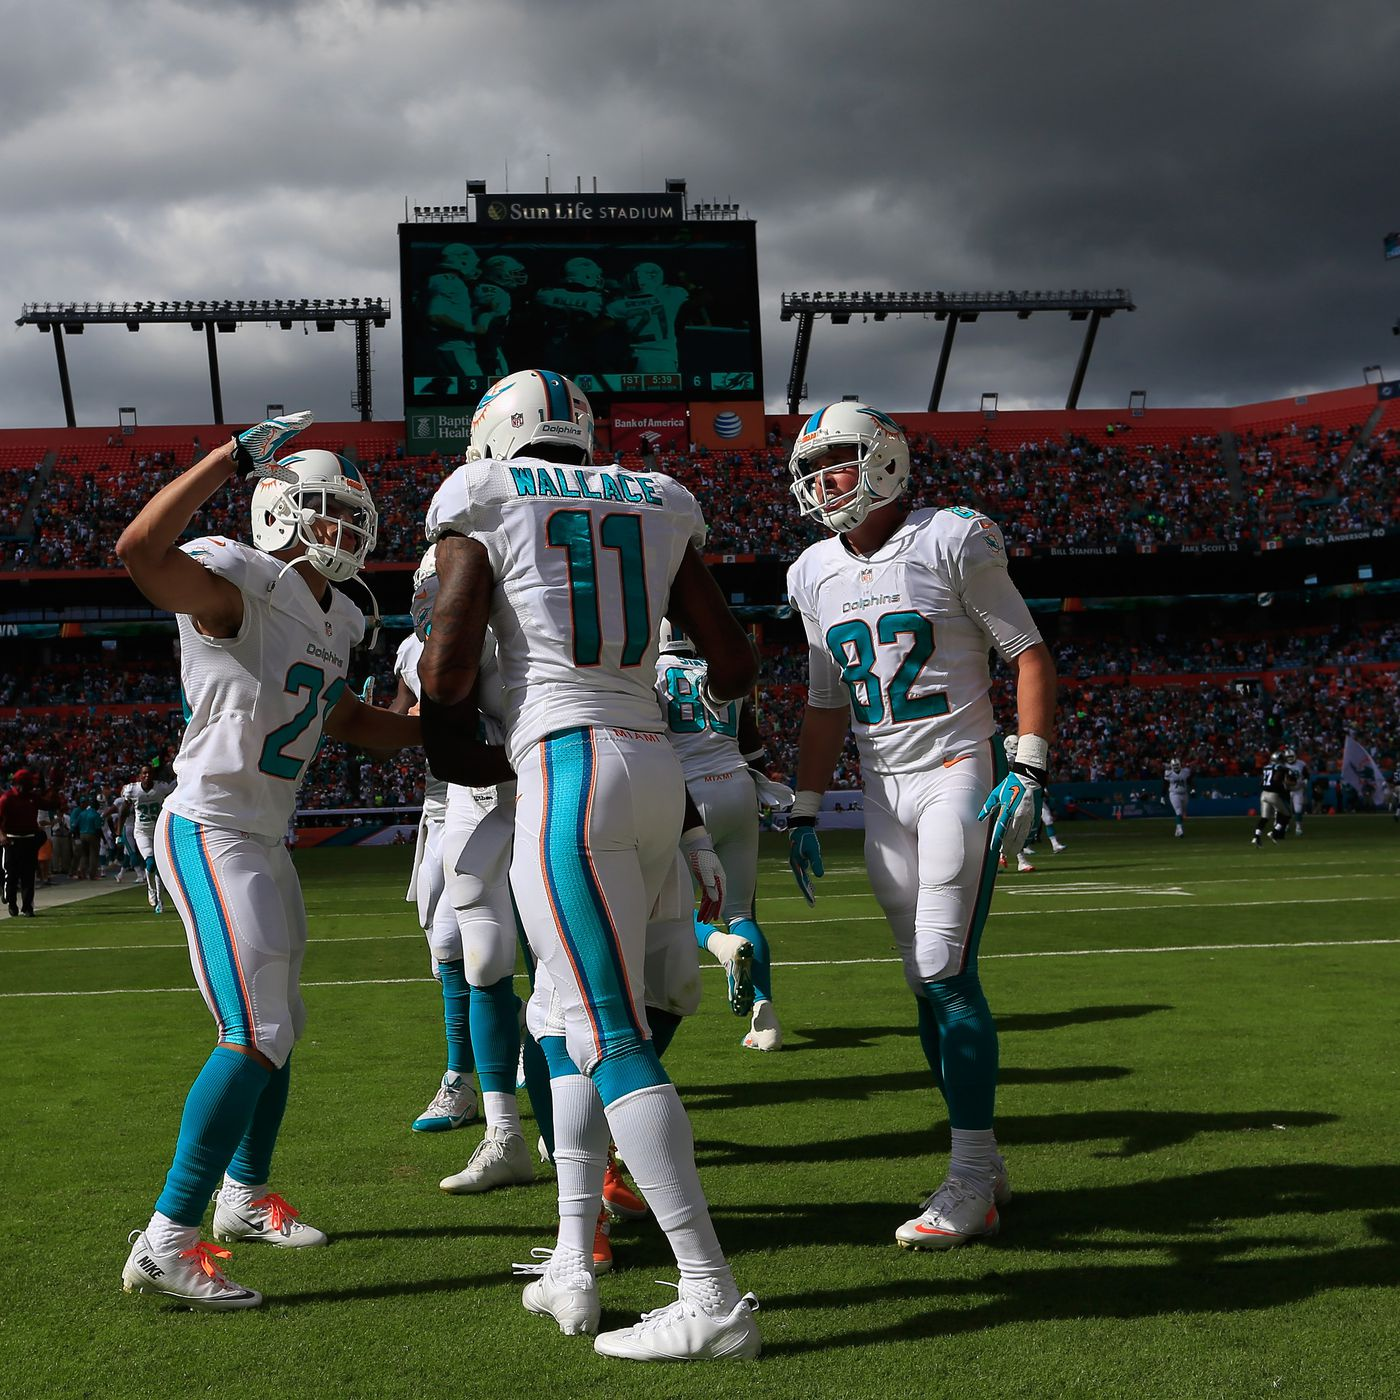 c7b0aaafb Panthers vs Dolphins recap  Miami offensive snap counts - The Phinsider